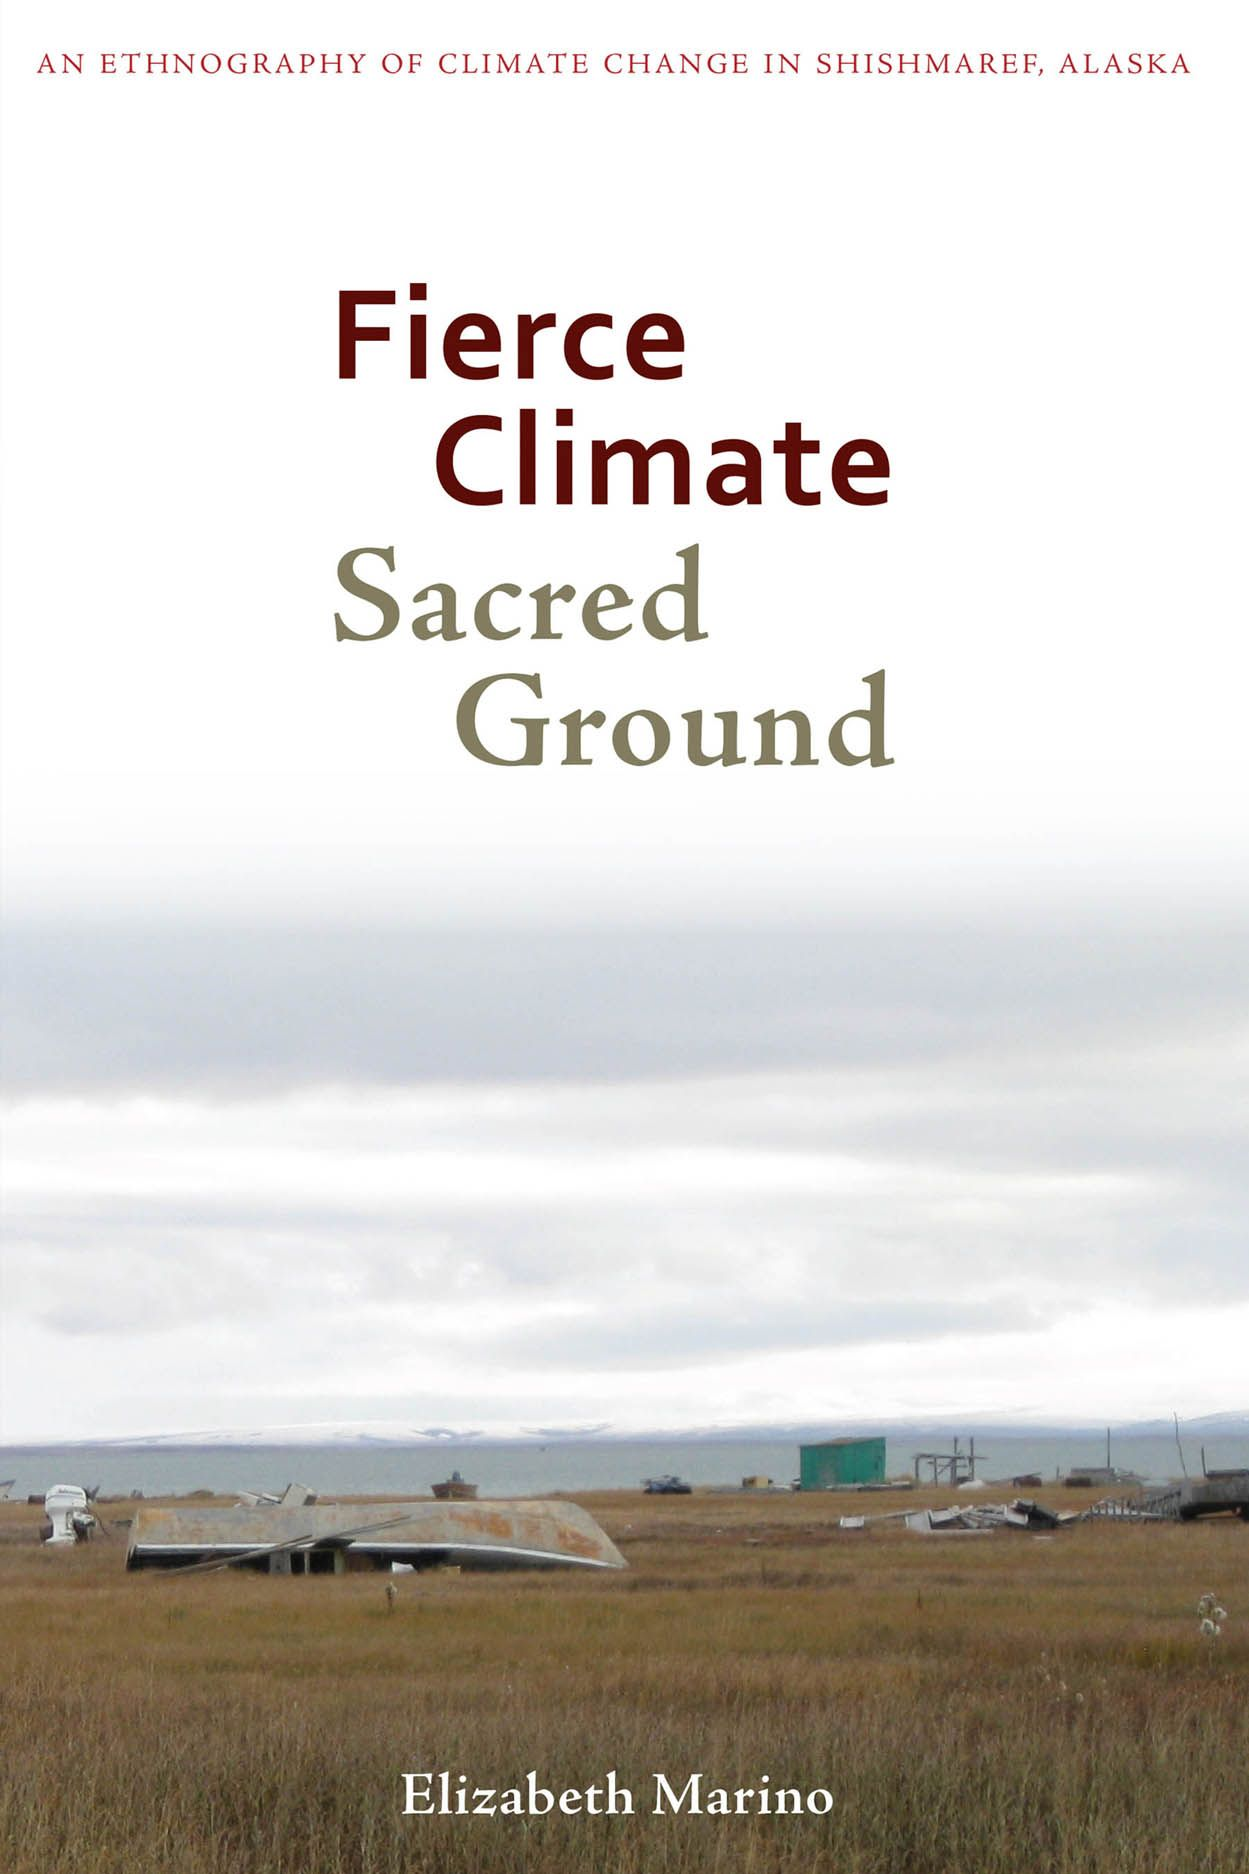 Fierce Climate, Sacred Ground: An Ethnography of Climate Change in Shishmaref, Alaska